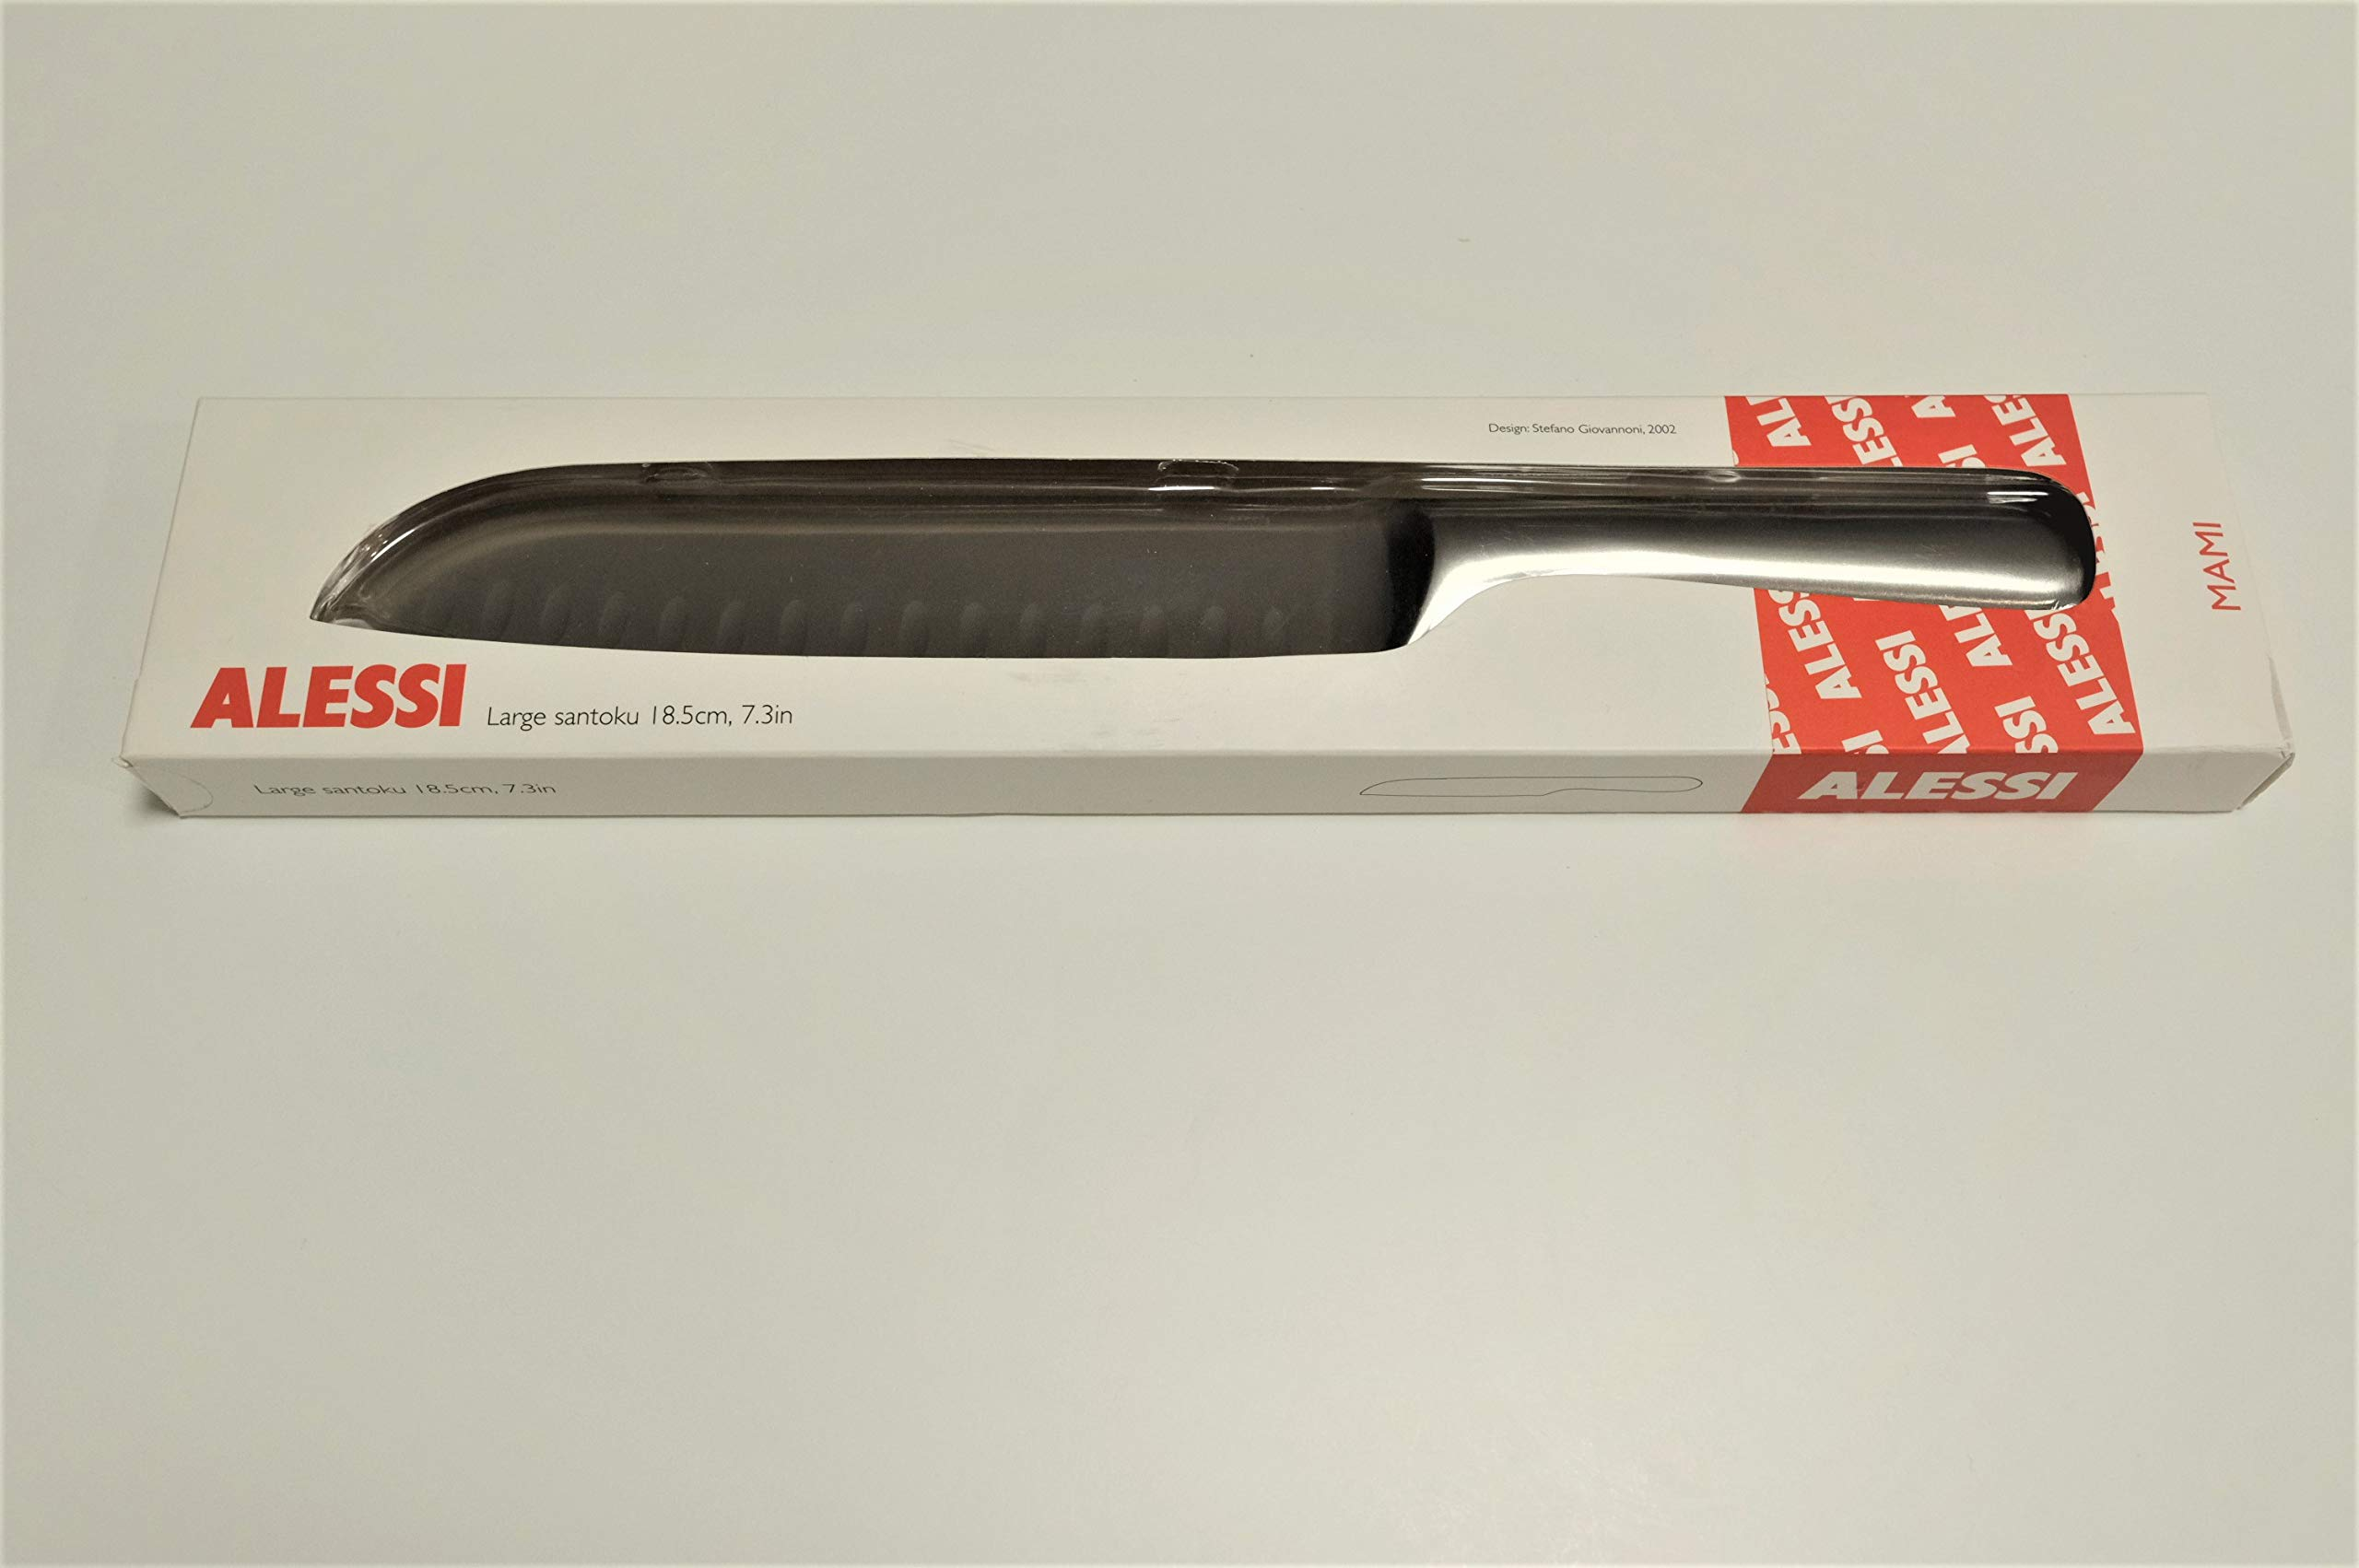 Alessi MAMI Large Santoku Knife 18.5 cm, 7.3 inches by Alessi